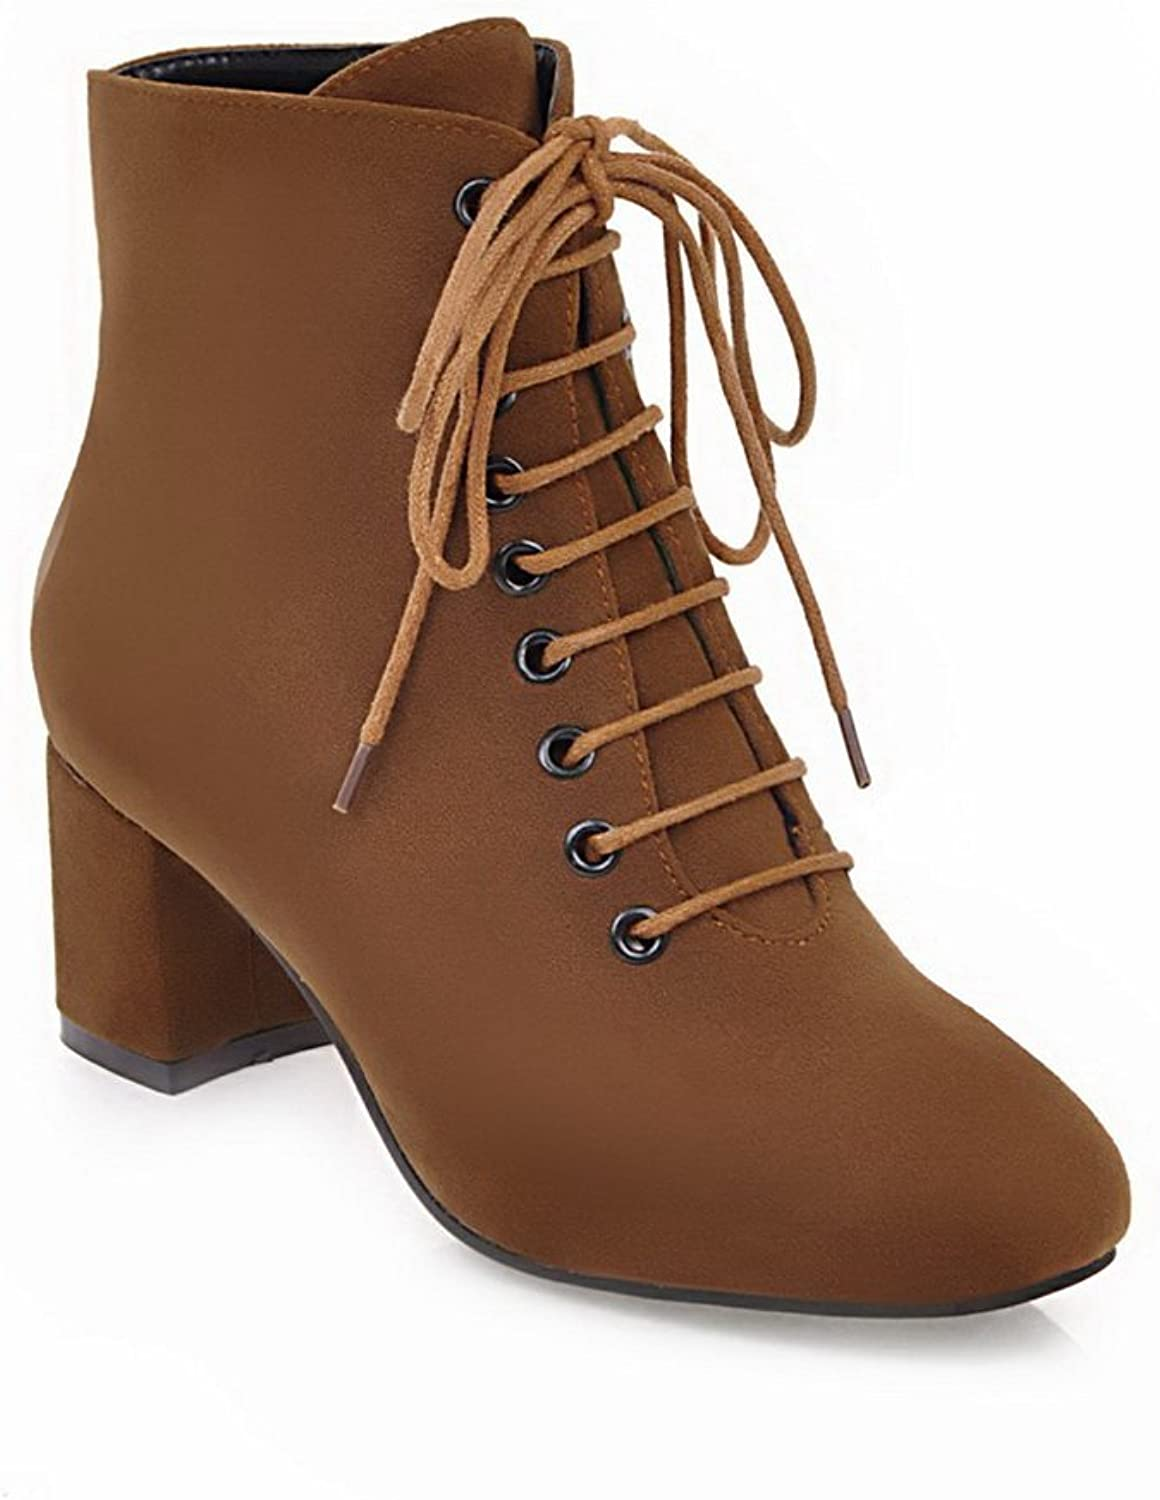 1TO9 Womens Boots Closed-Toe Lace-Up Adjustable-Strap High-Heel Warm Lining Nubuck Outdoor Bootie Urethane Boots MNS02510